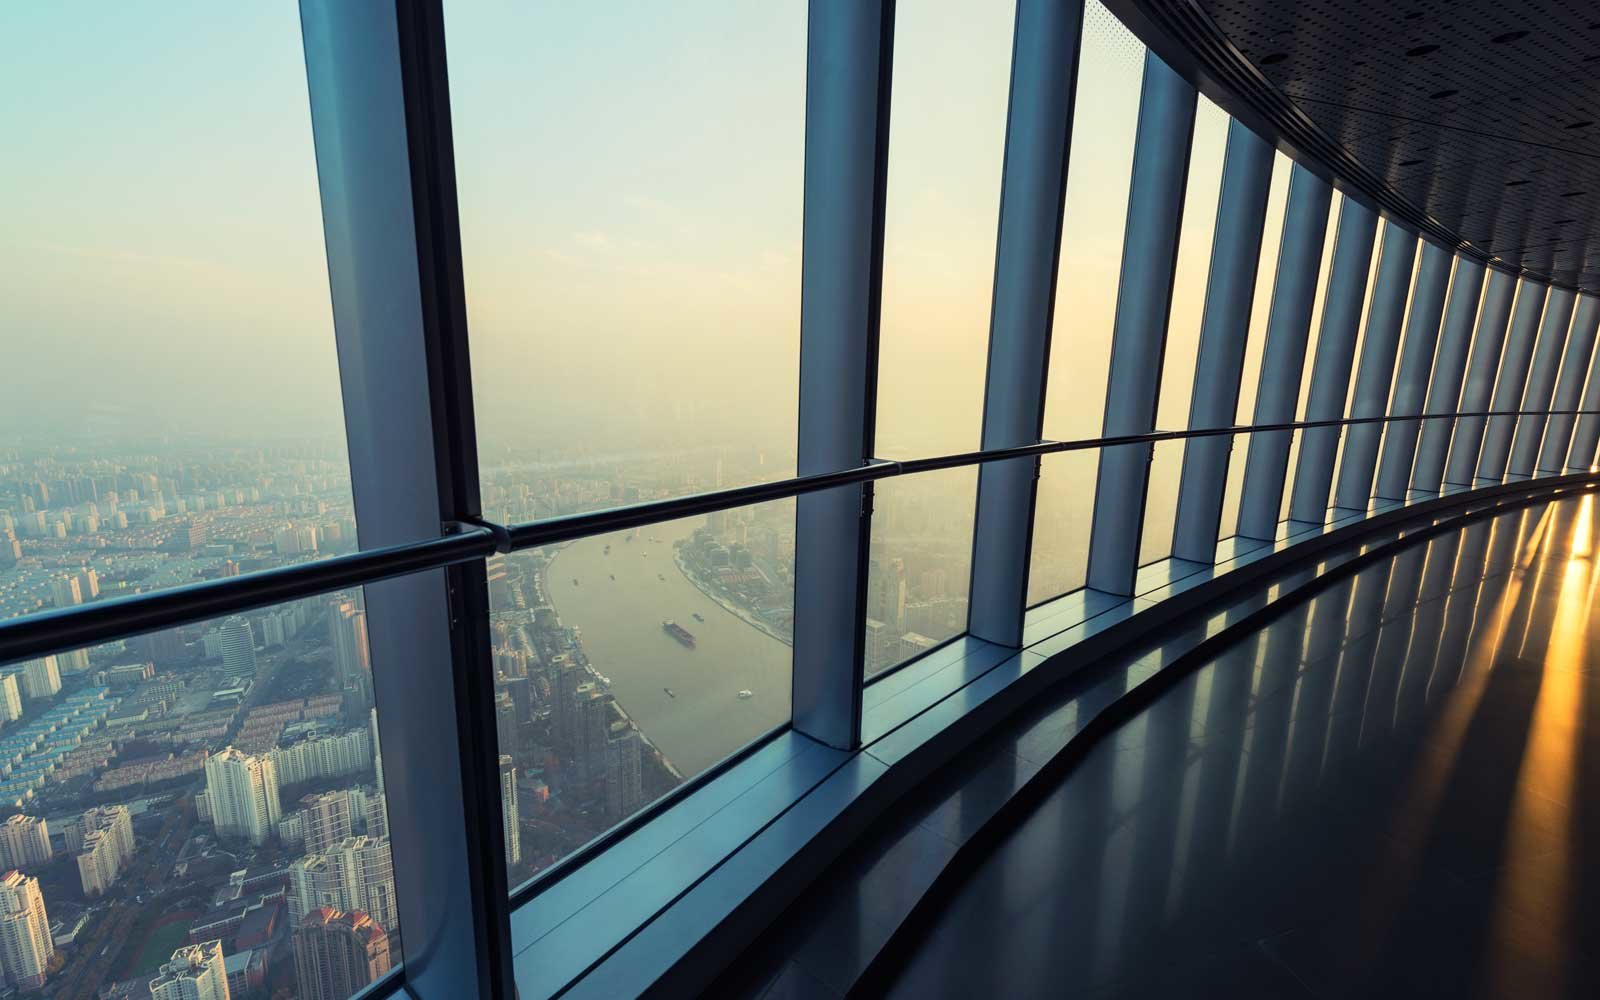 The high-rise viewing platform of the Shanghai Tower, China